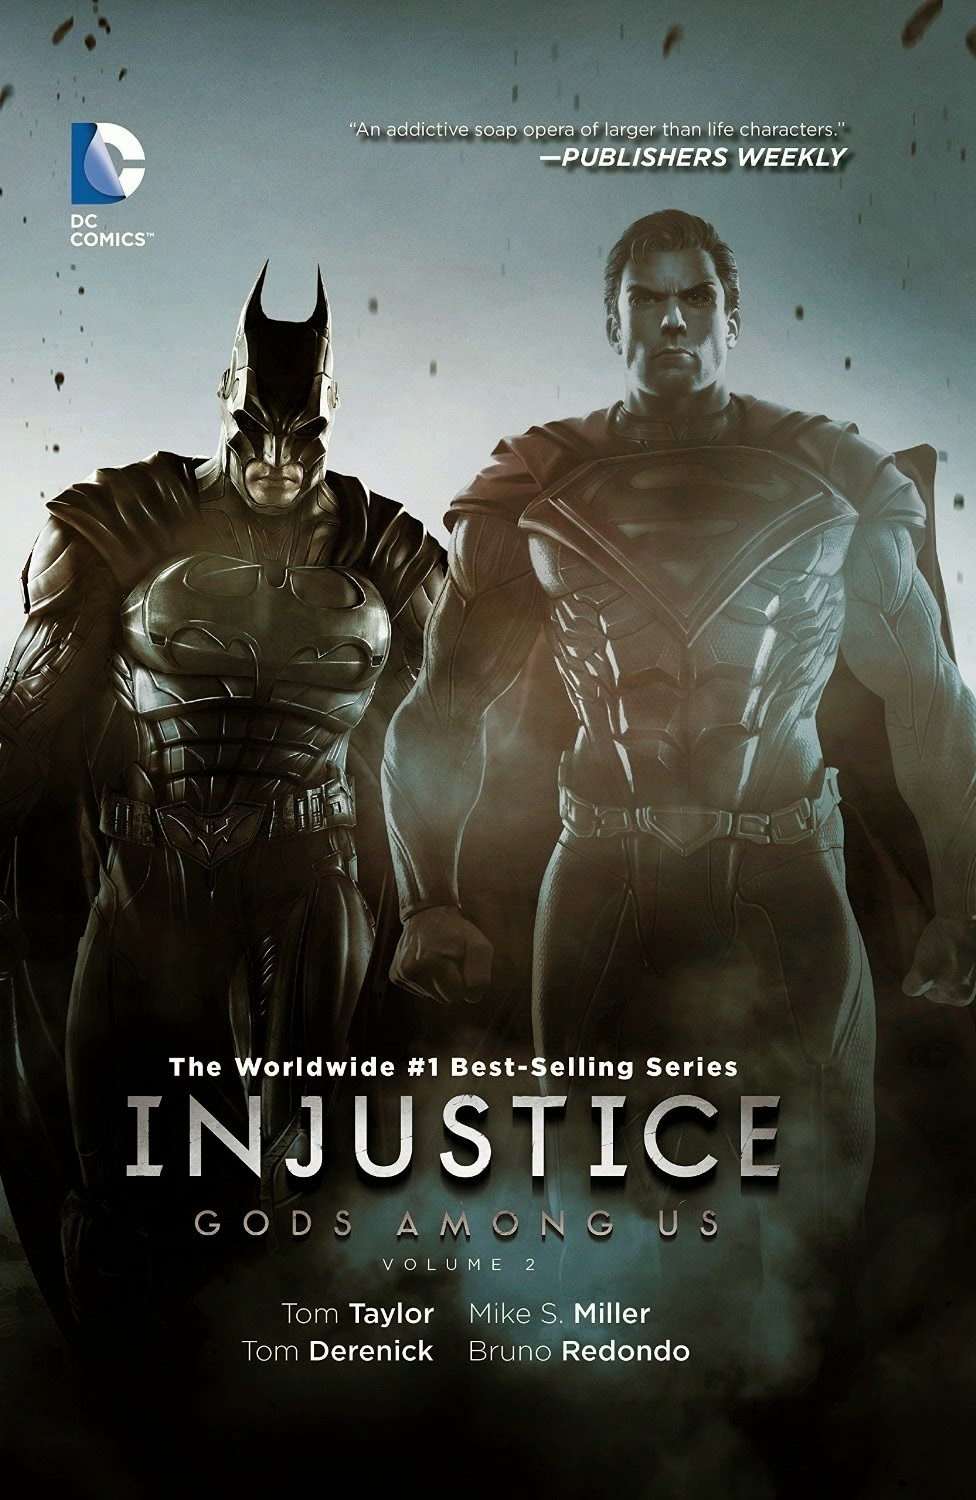 http://superheroesrevelados.blogspot.com.ar/2014/09/injustice-gods-among-us-comics.html